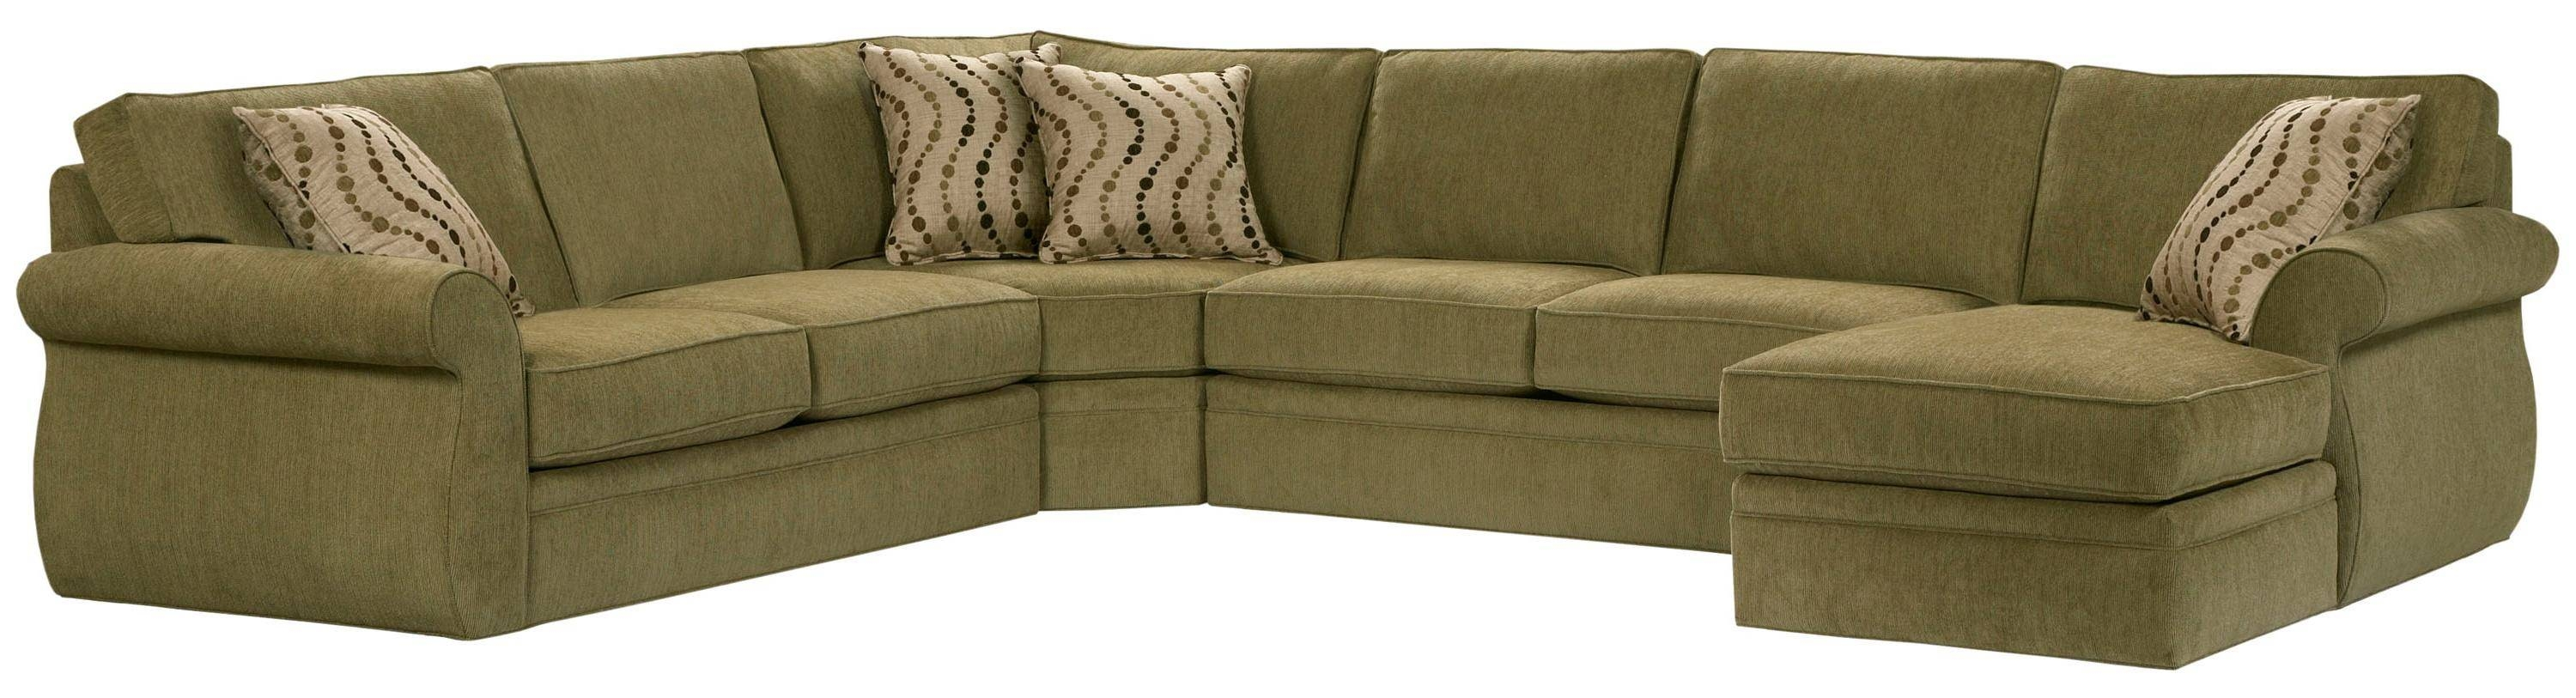 Broyhill Furniture Veronica Right Arm Facing Customizable Chaise intended for Broyhill Sectional Sofas (Image 15 of 30)